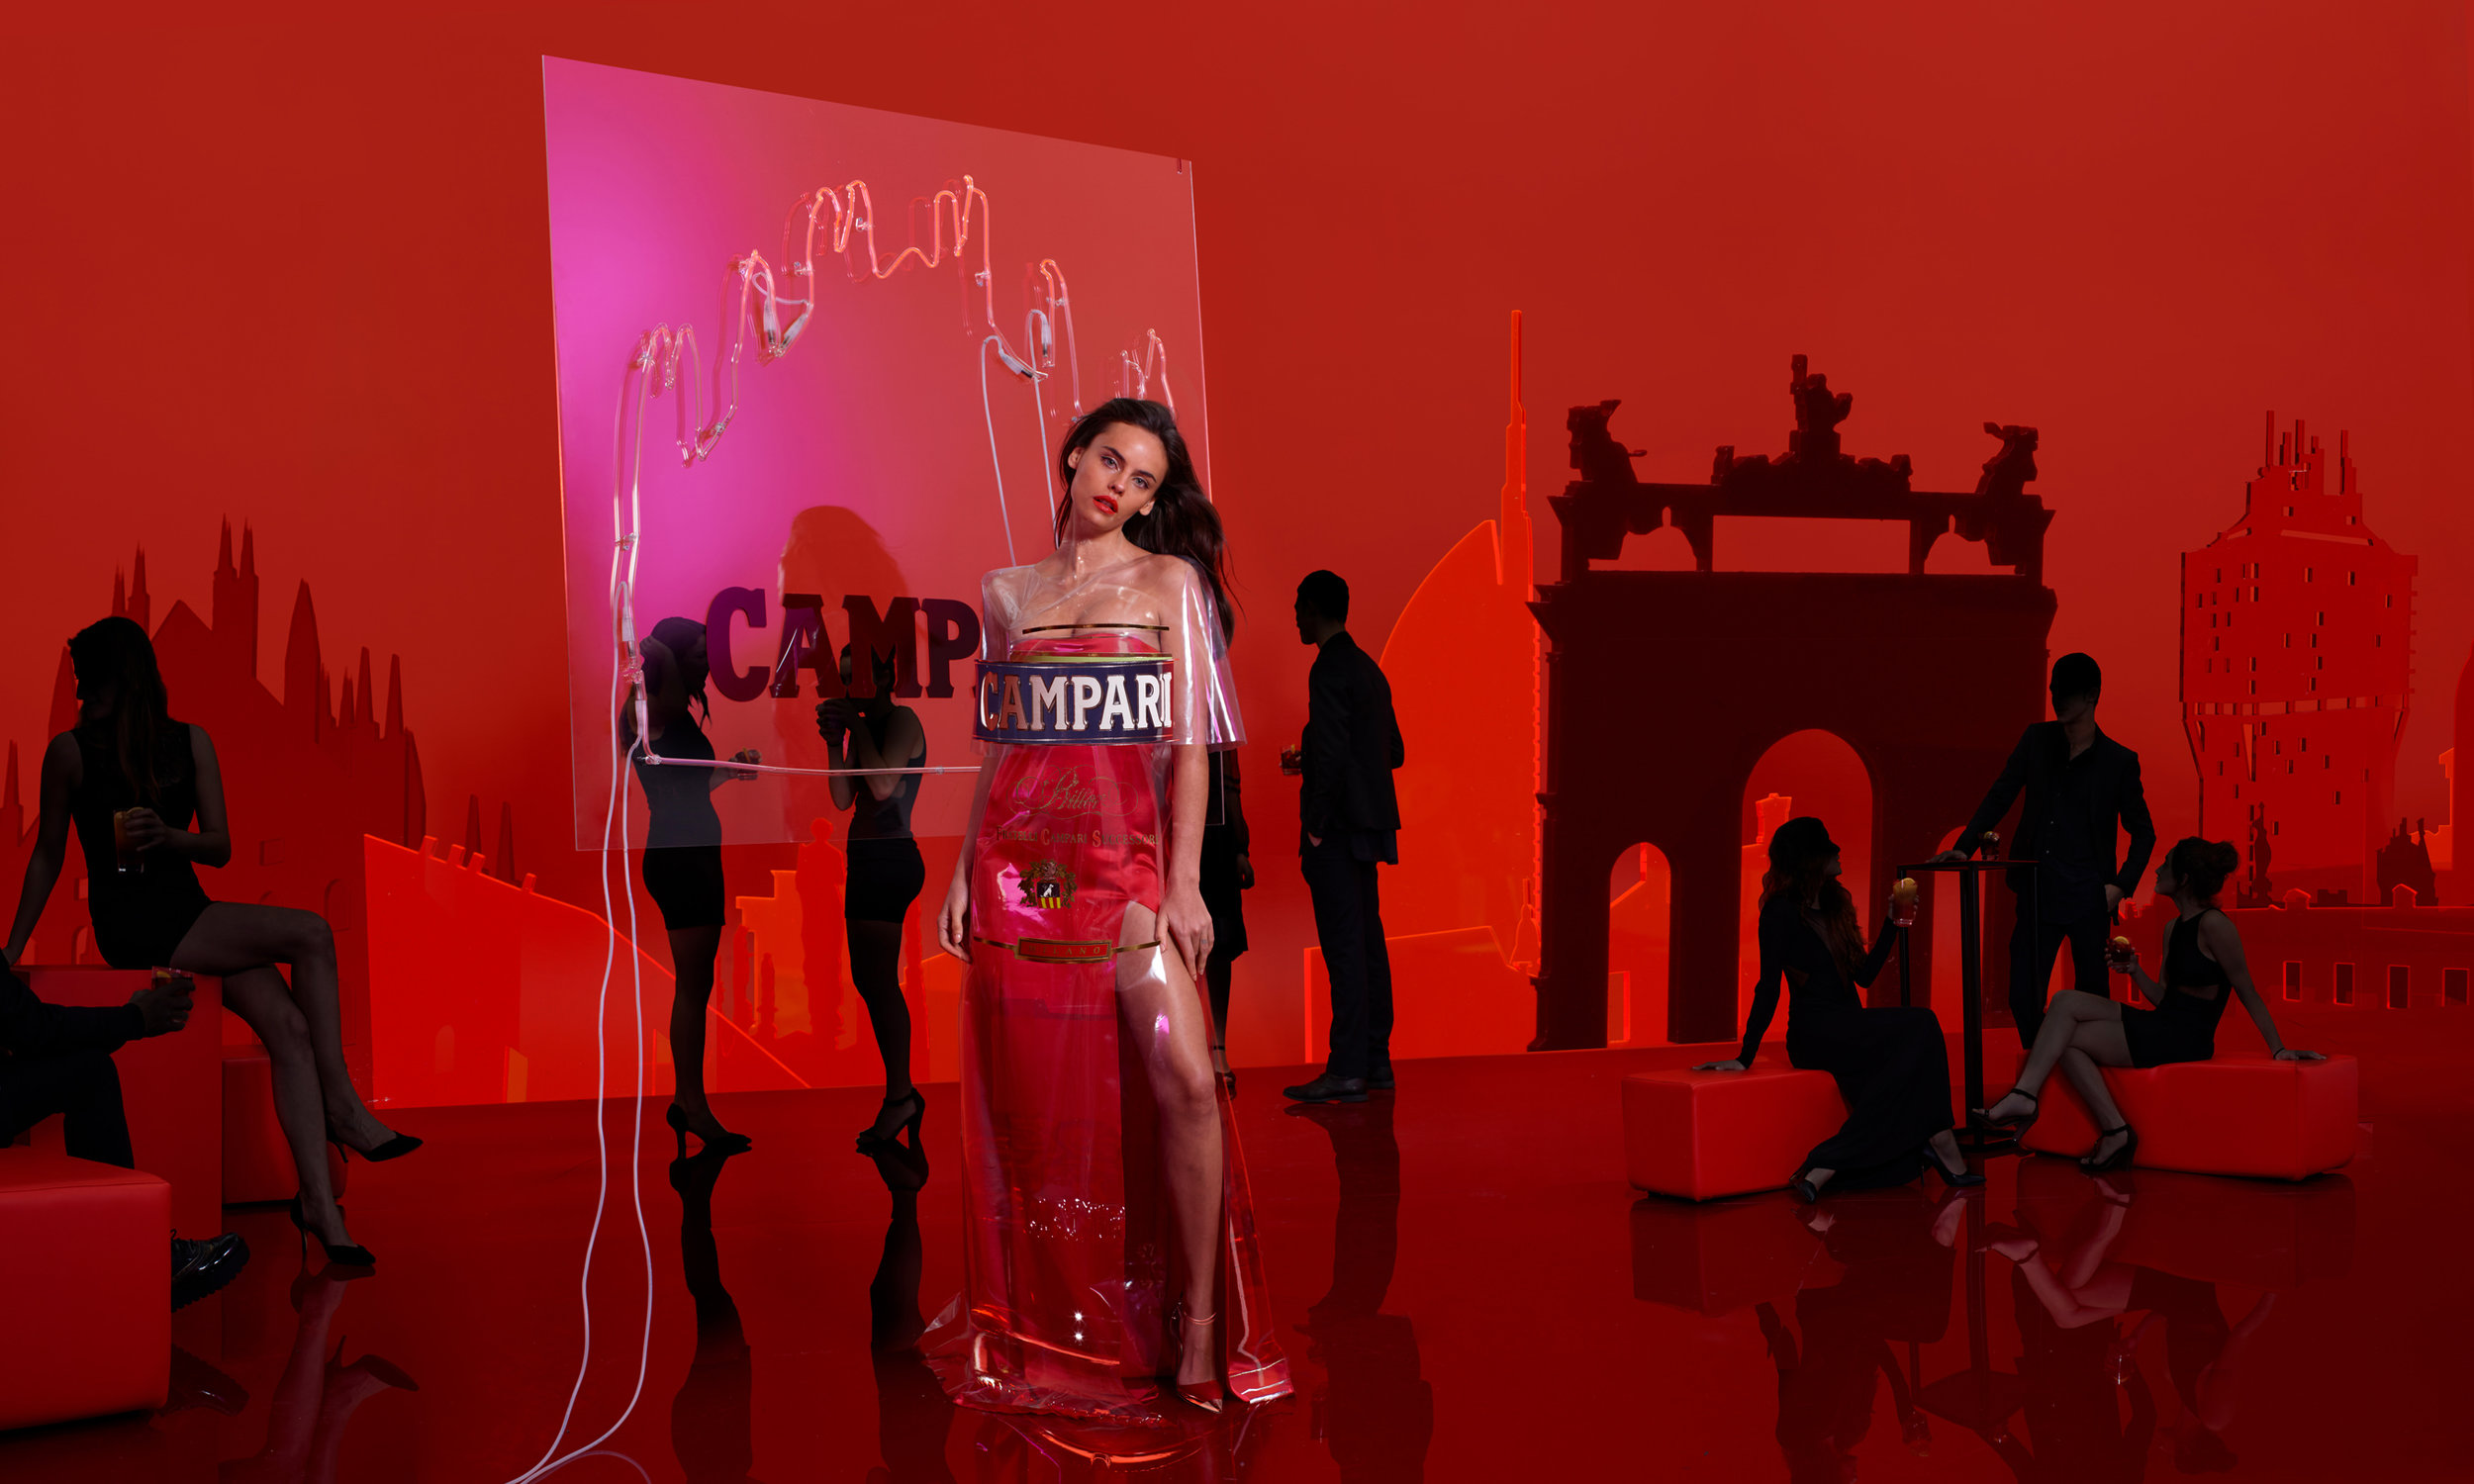 Campari - Campaign for Wold Expo Milan, 2015